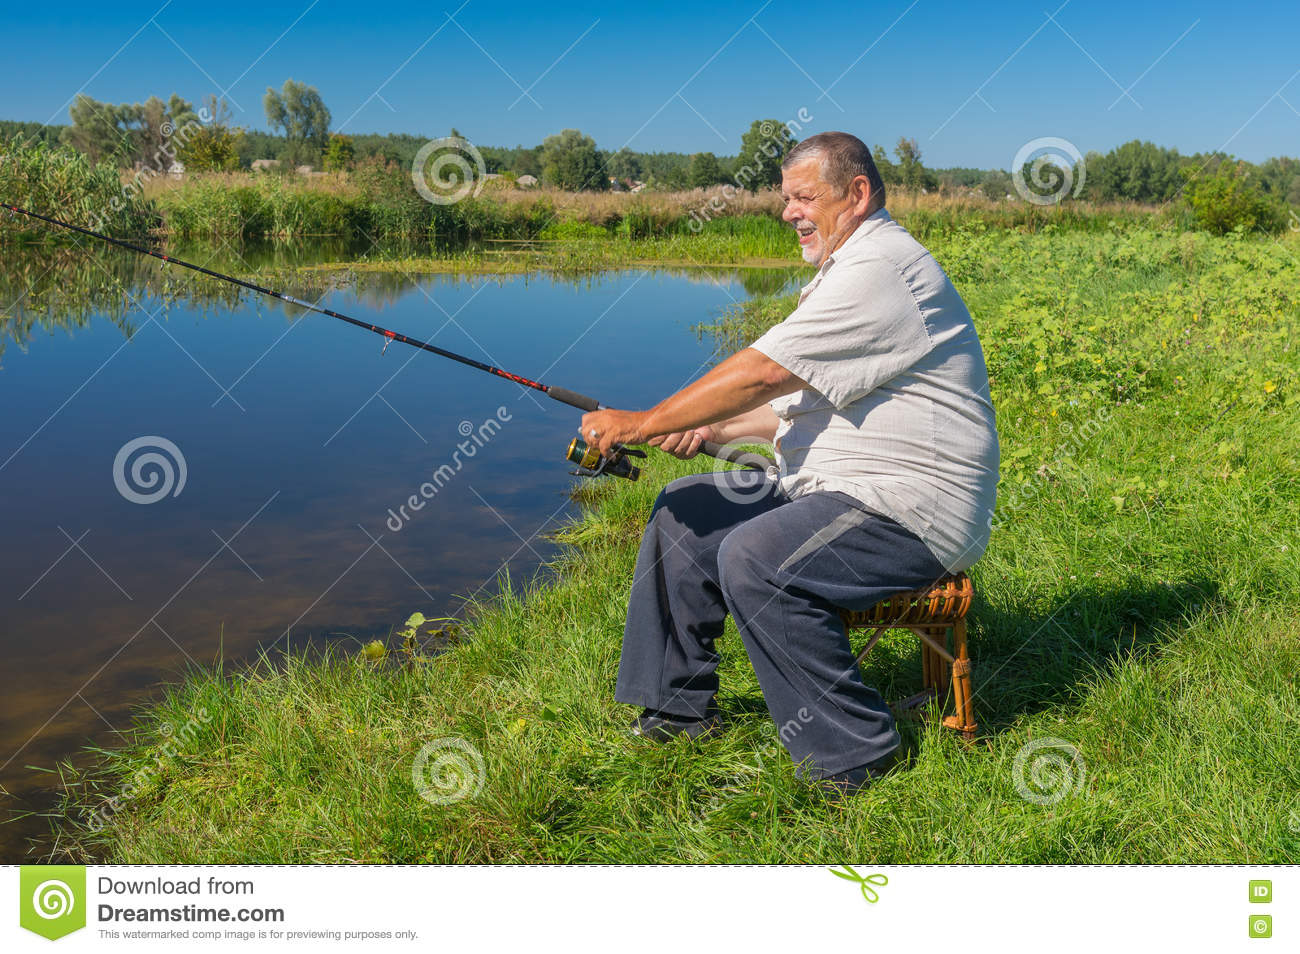 Wondrous Fisherman Sitting On A Wicker Stool With Spinning Rod And Gmtry Best Dining Table And Chair Ideas Images Gmtryco